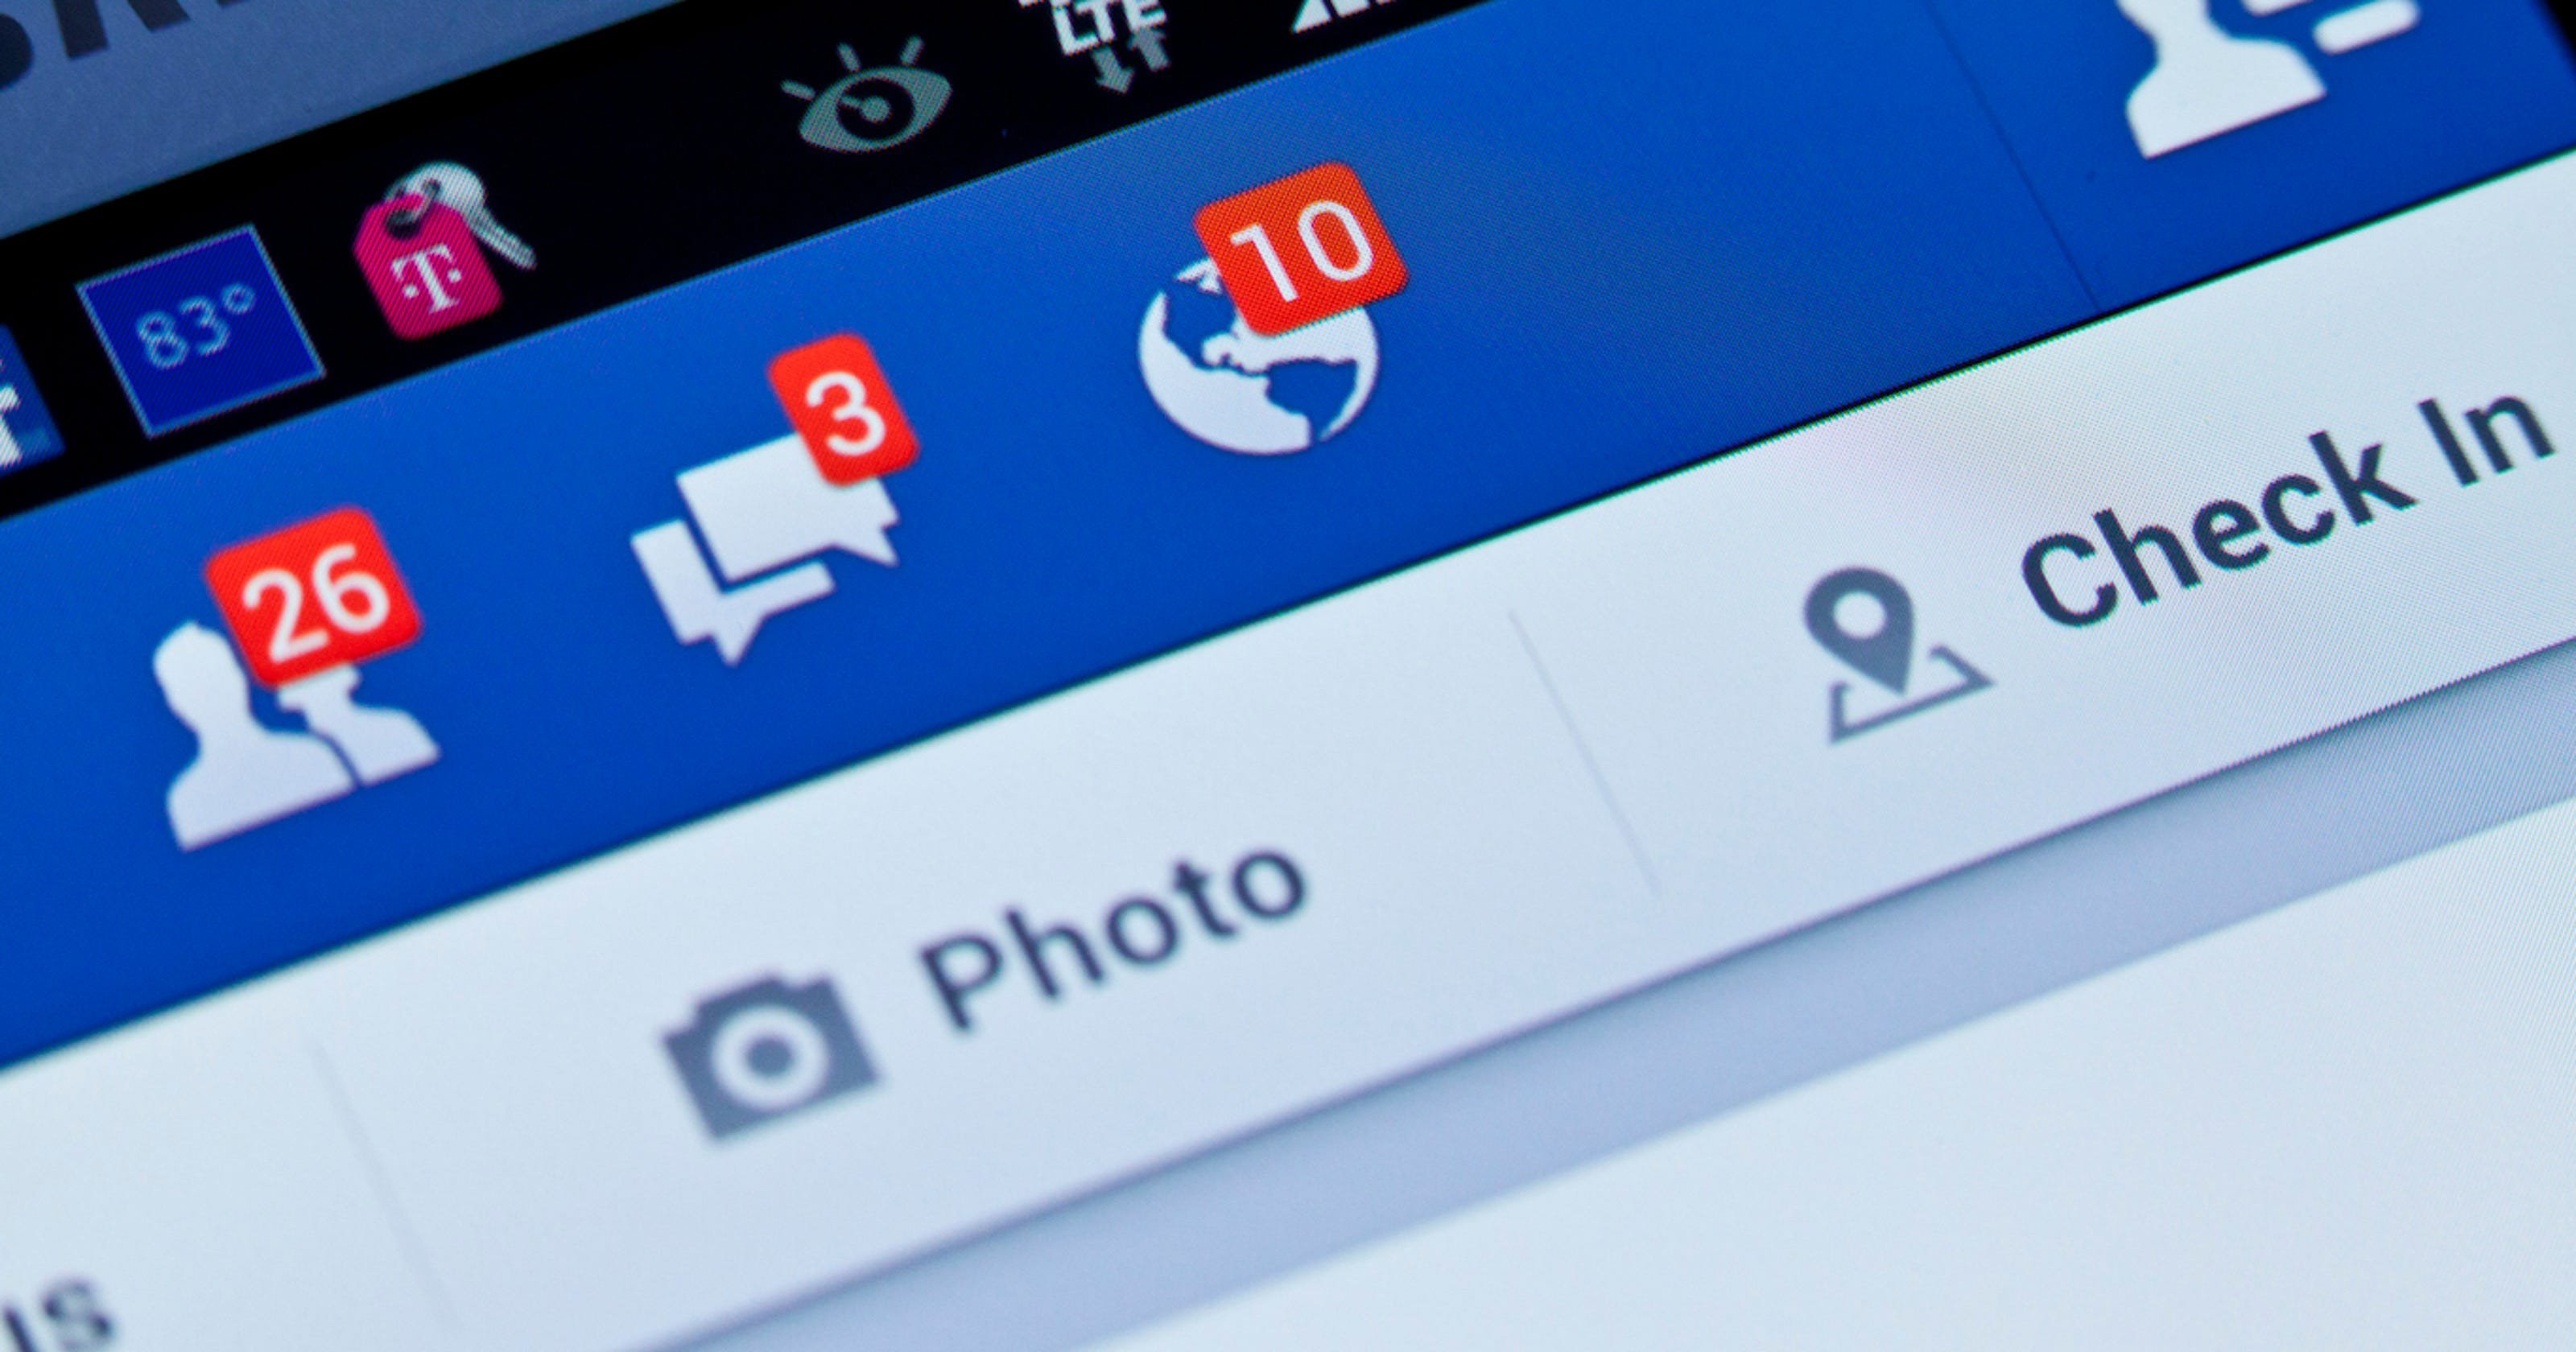 I loved Facebook. After 12 years of daily use, here's why I'm unfriending it for good.